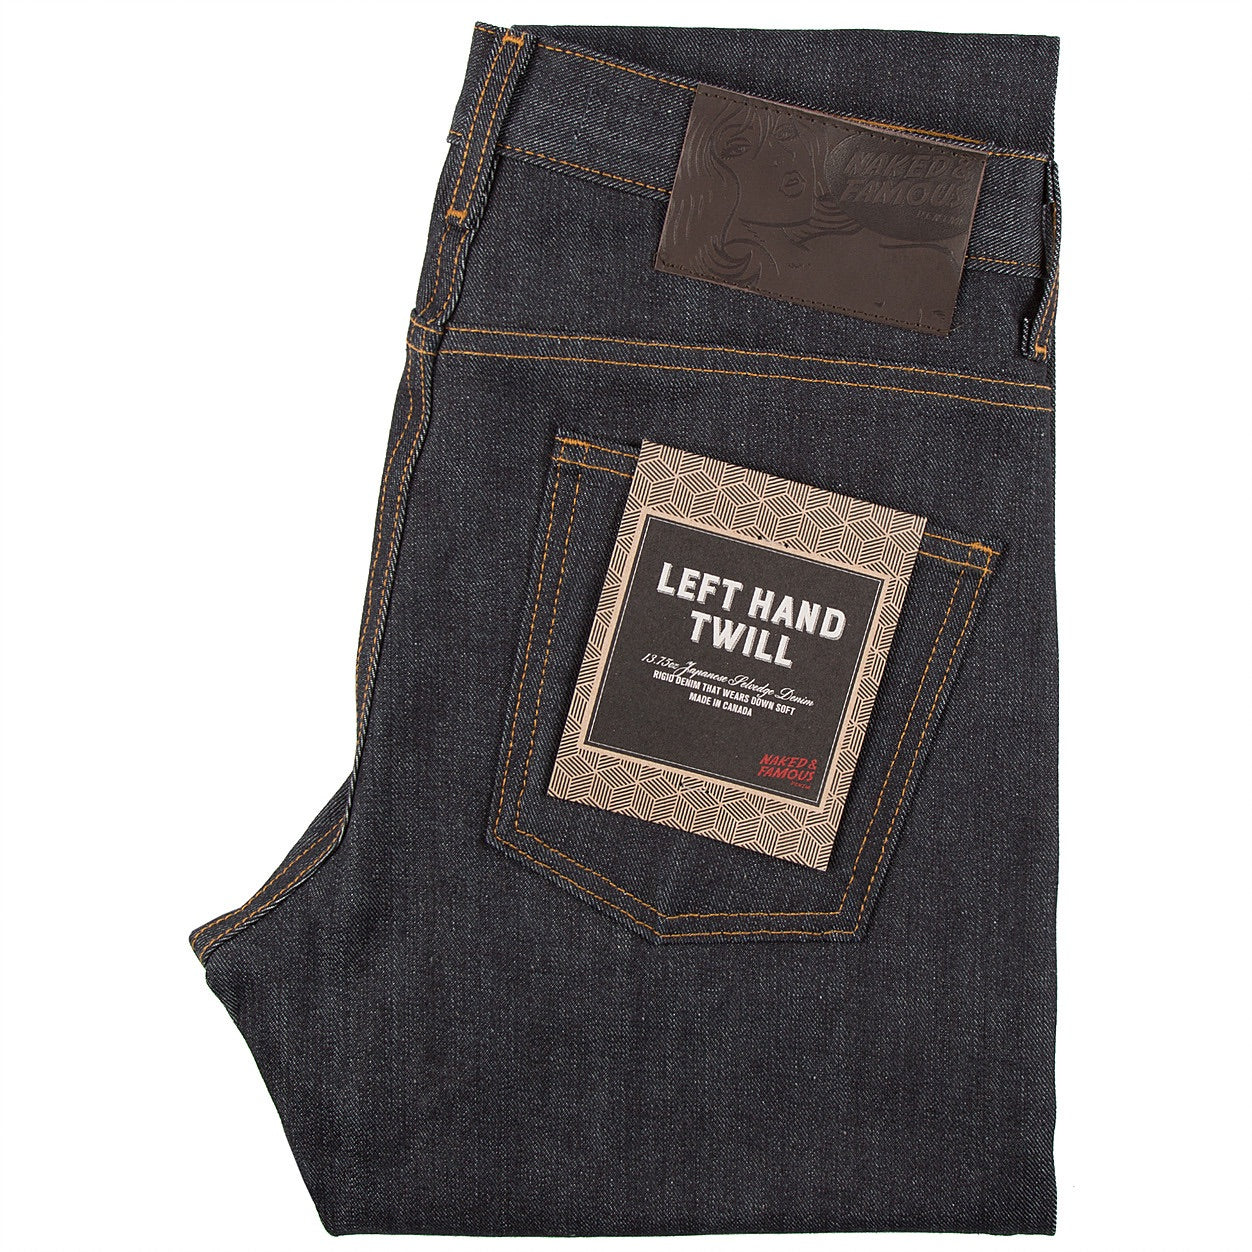 N&F - Left Hand Twill Selvedge - The Populess Company